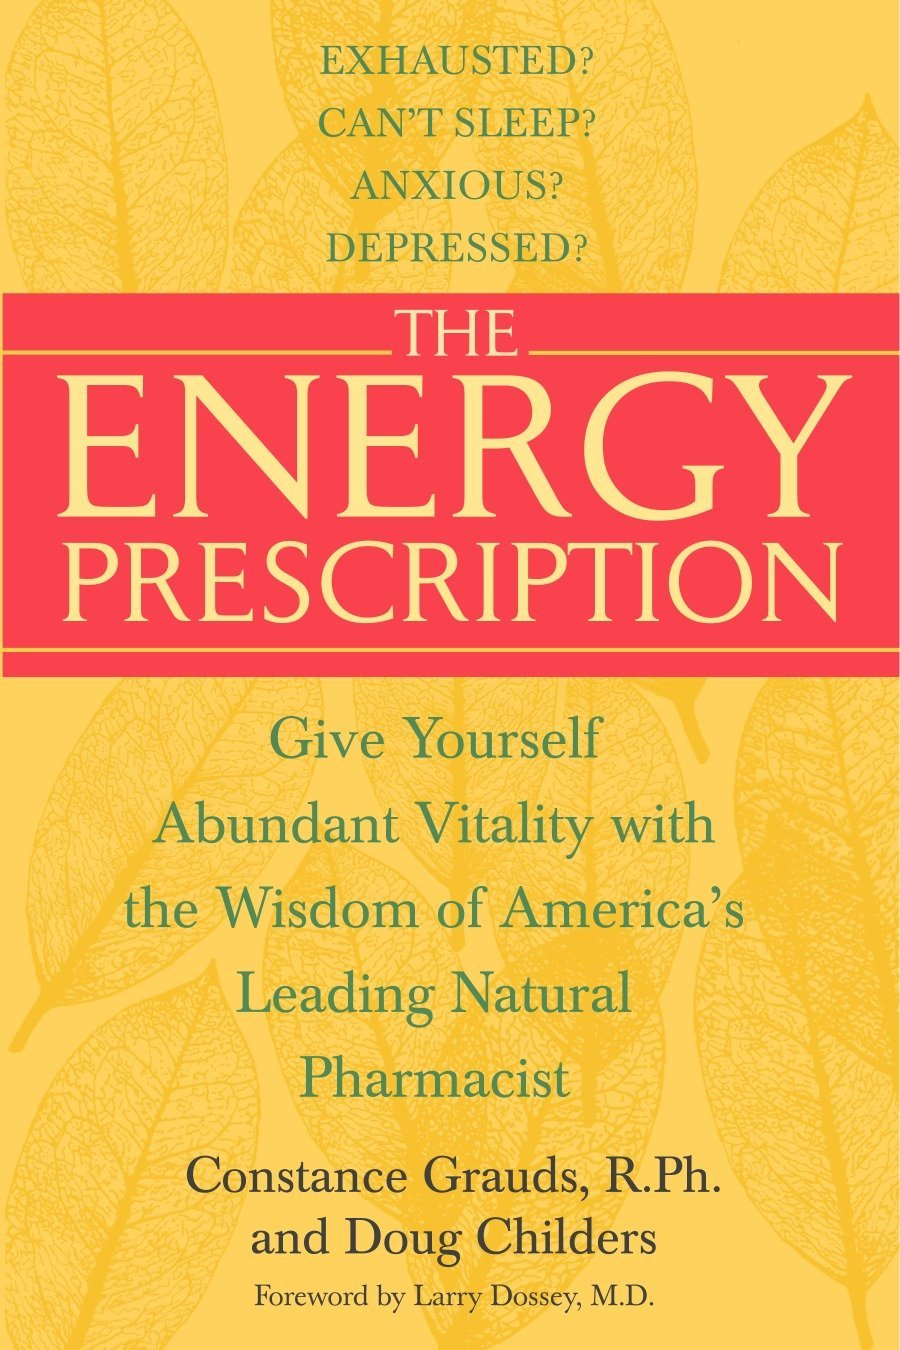 Read Online The Energy Prescription: Give Yourself Abundant Vitality with the Wisdom of America's Leading Natural Pharmacist pdf